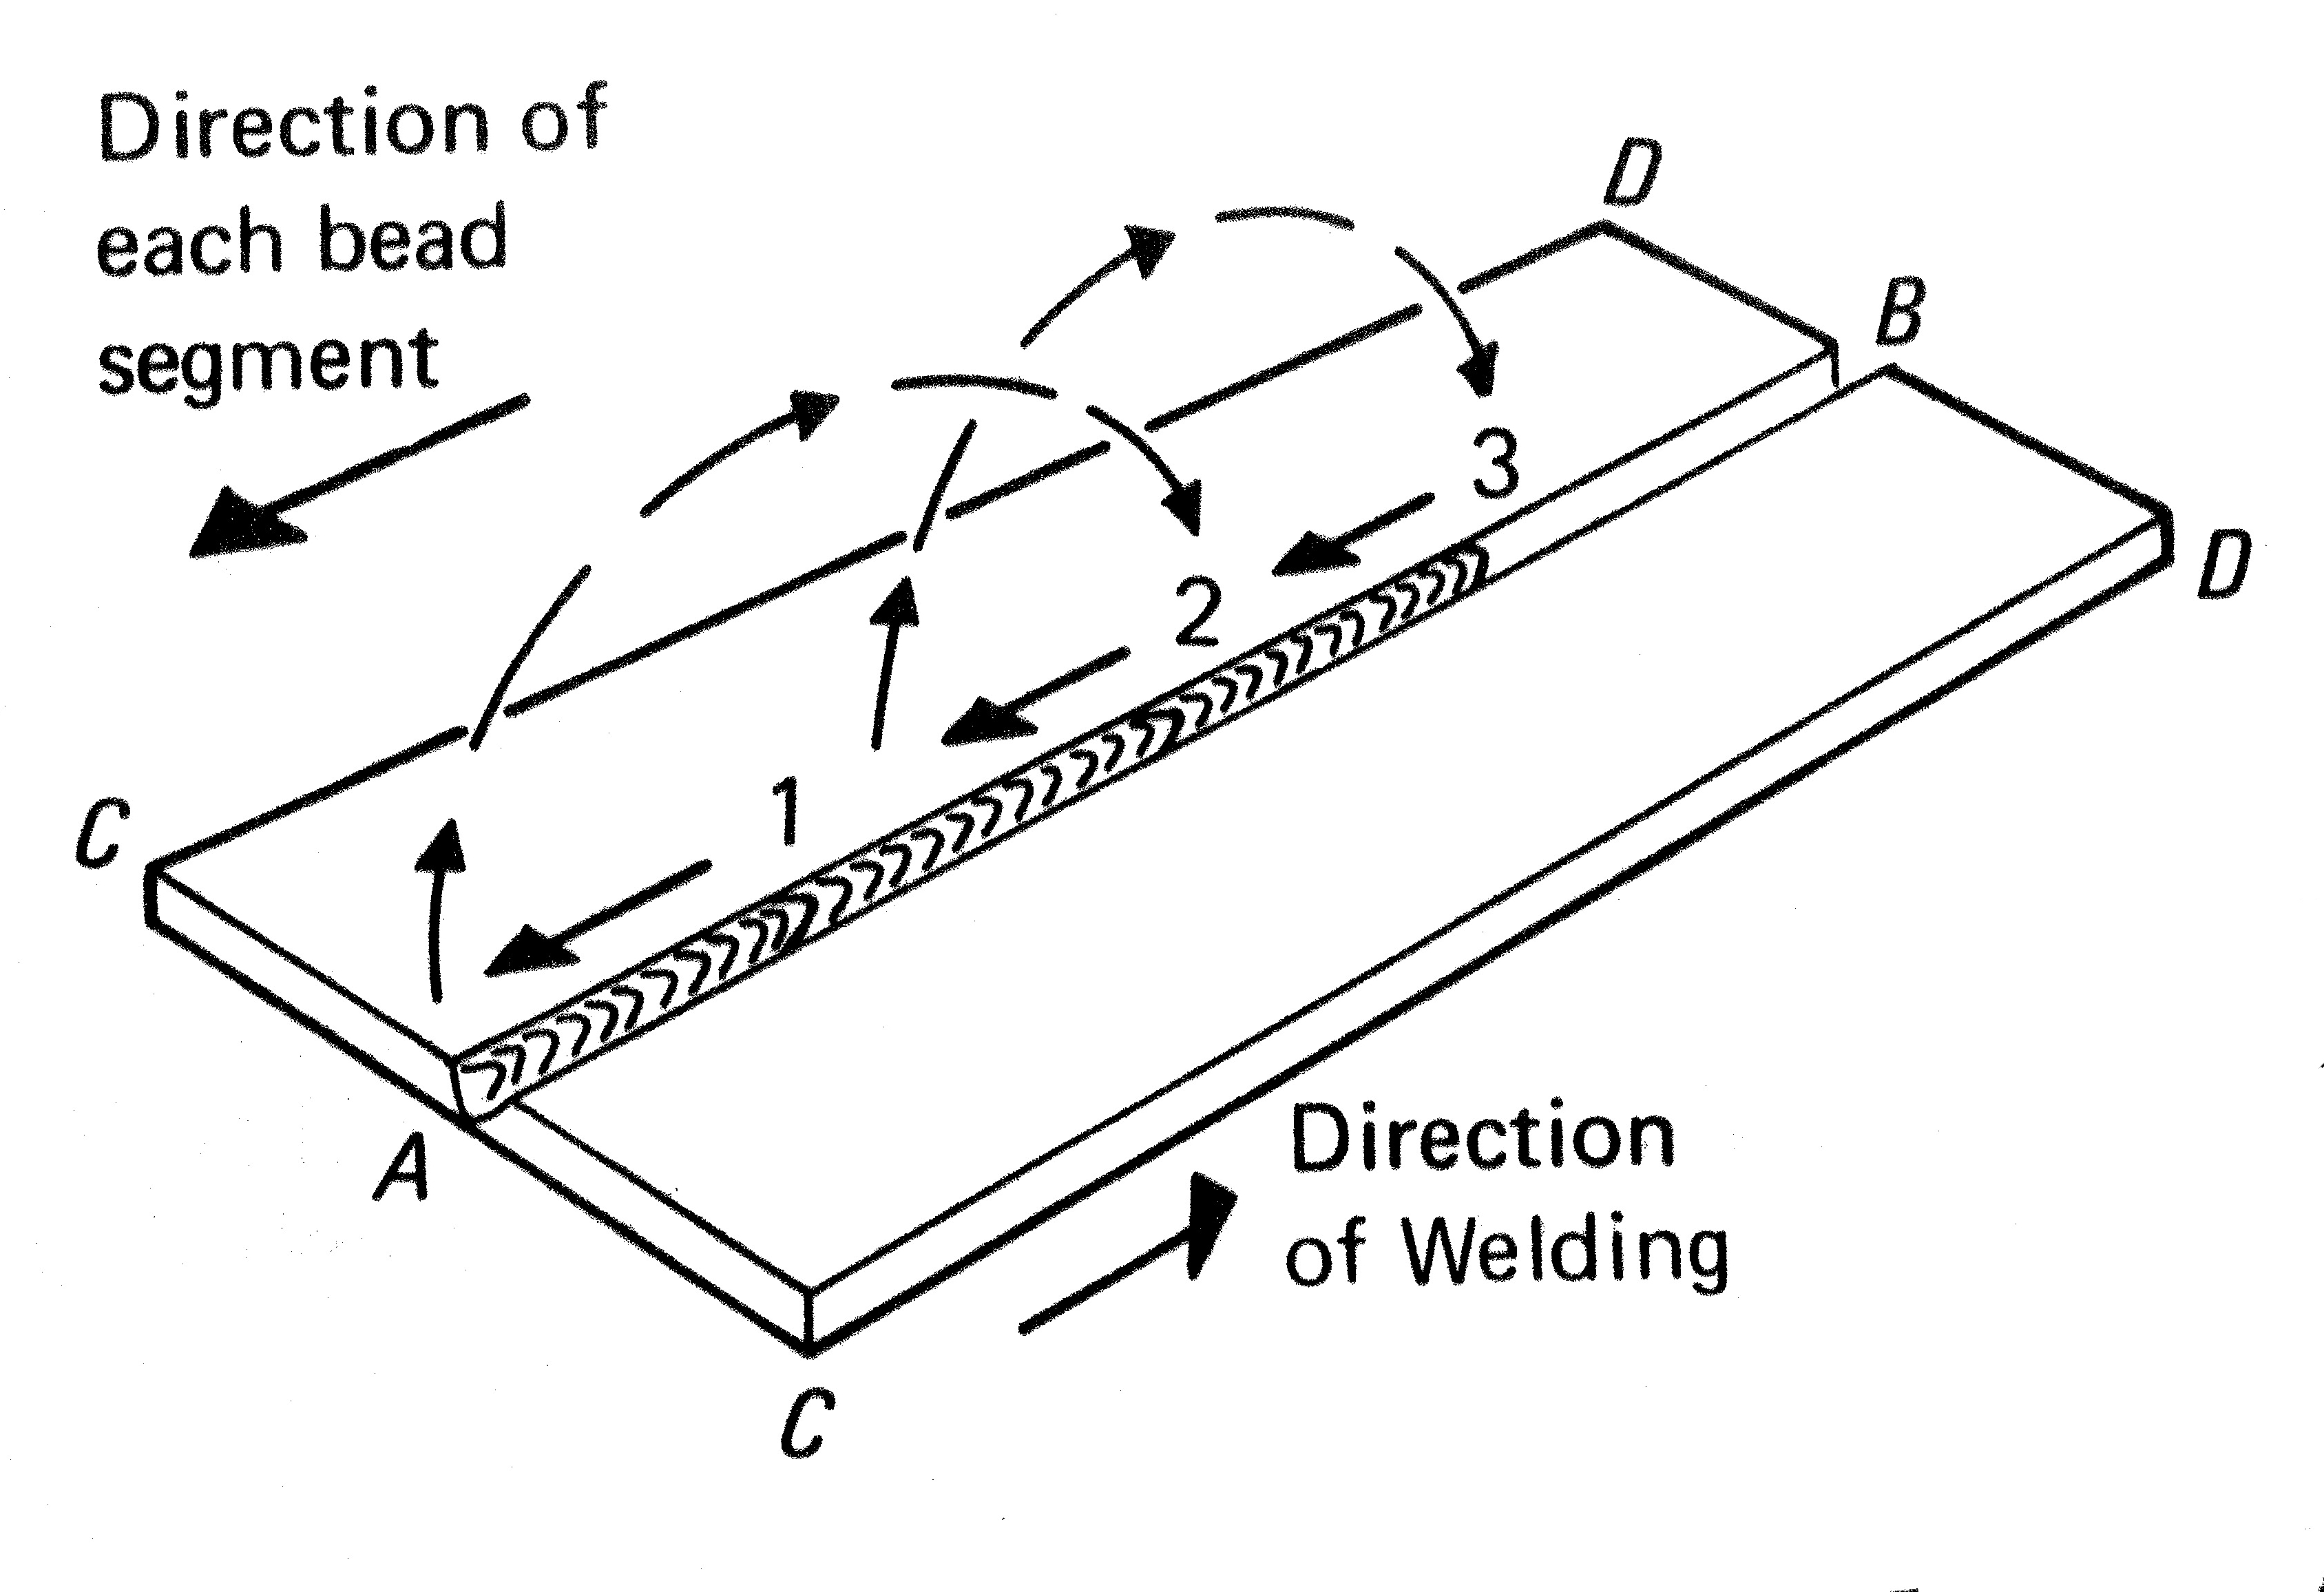 Figure 5. The general progression of the backstep welding technique may be left to right, but each bead segment is deposited from right to left.